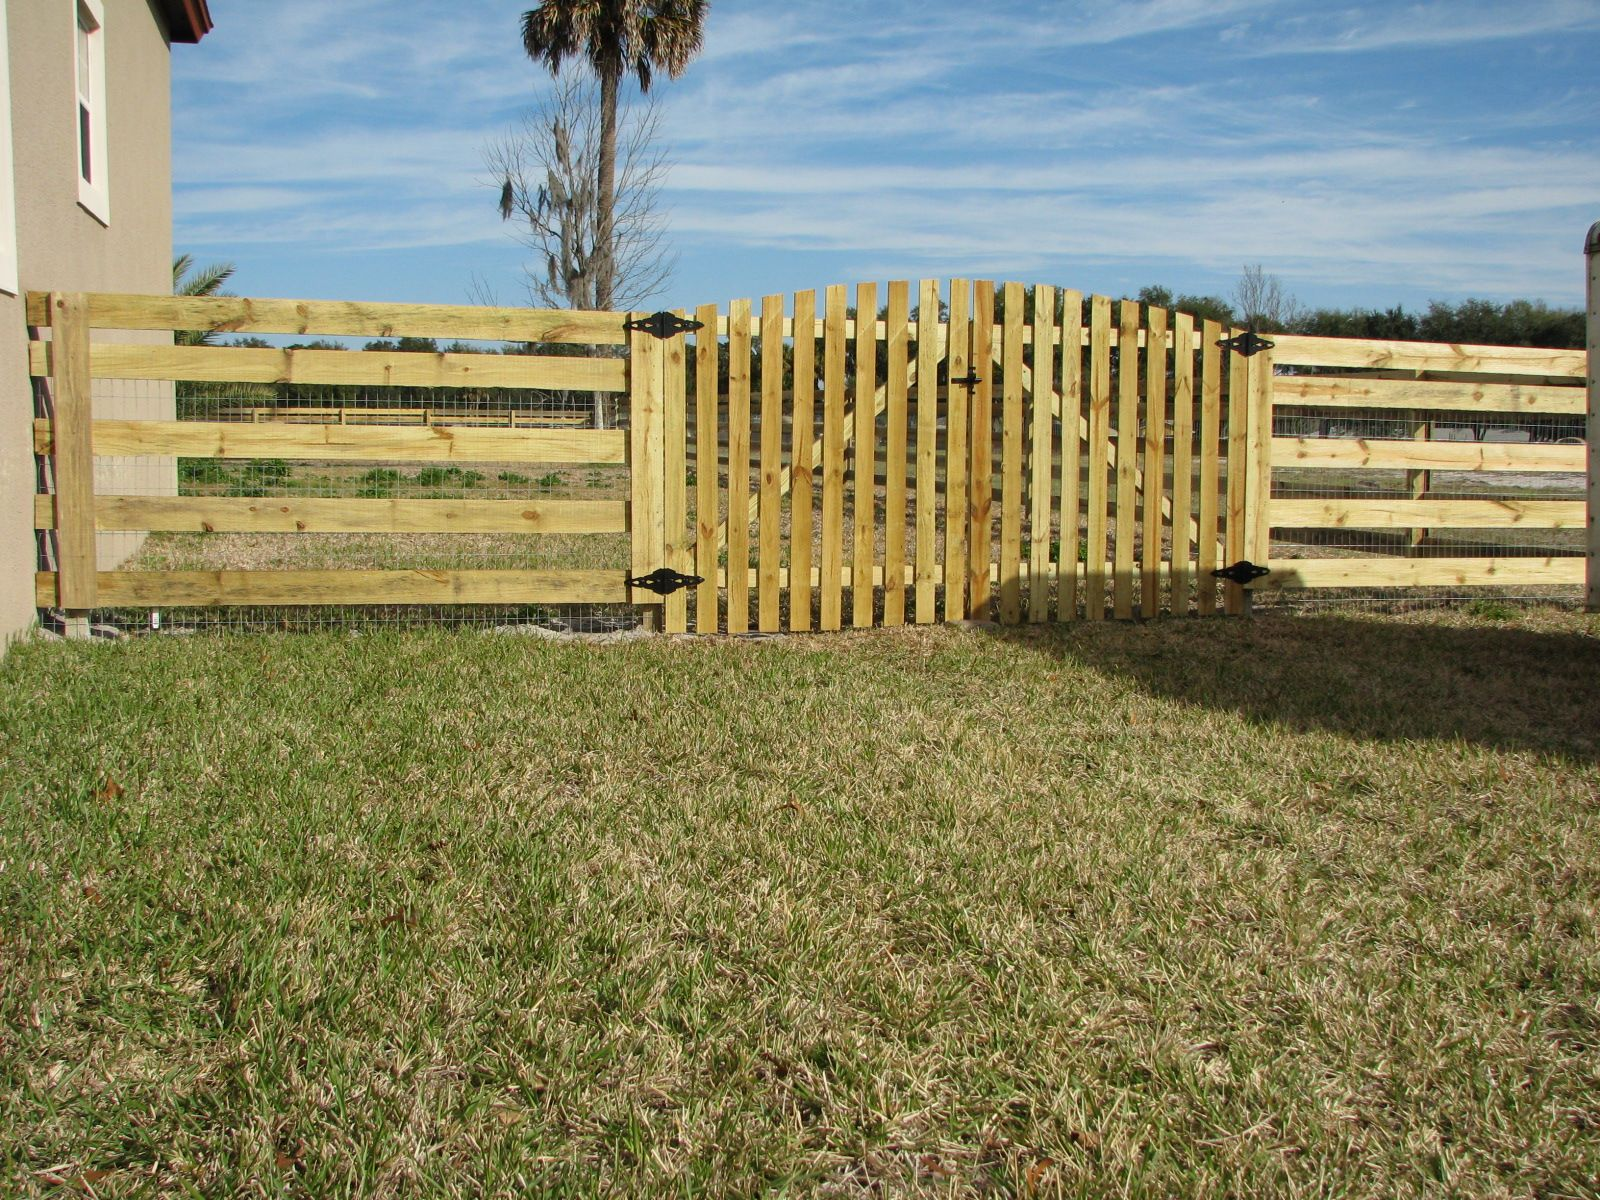 Custom Wood Horse Fence Design With Wire For Added